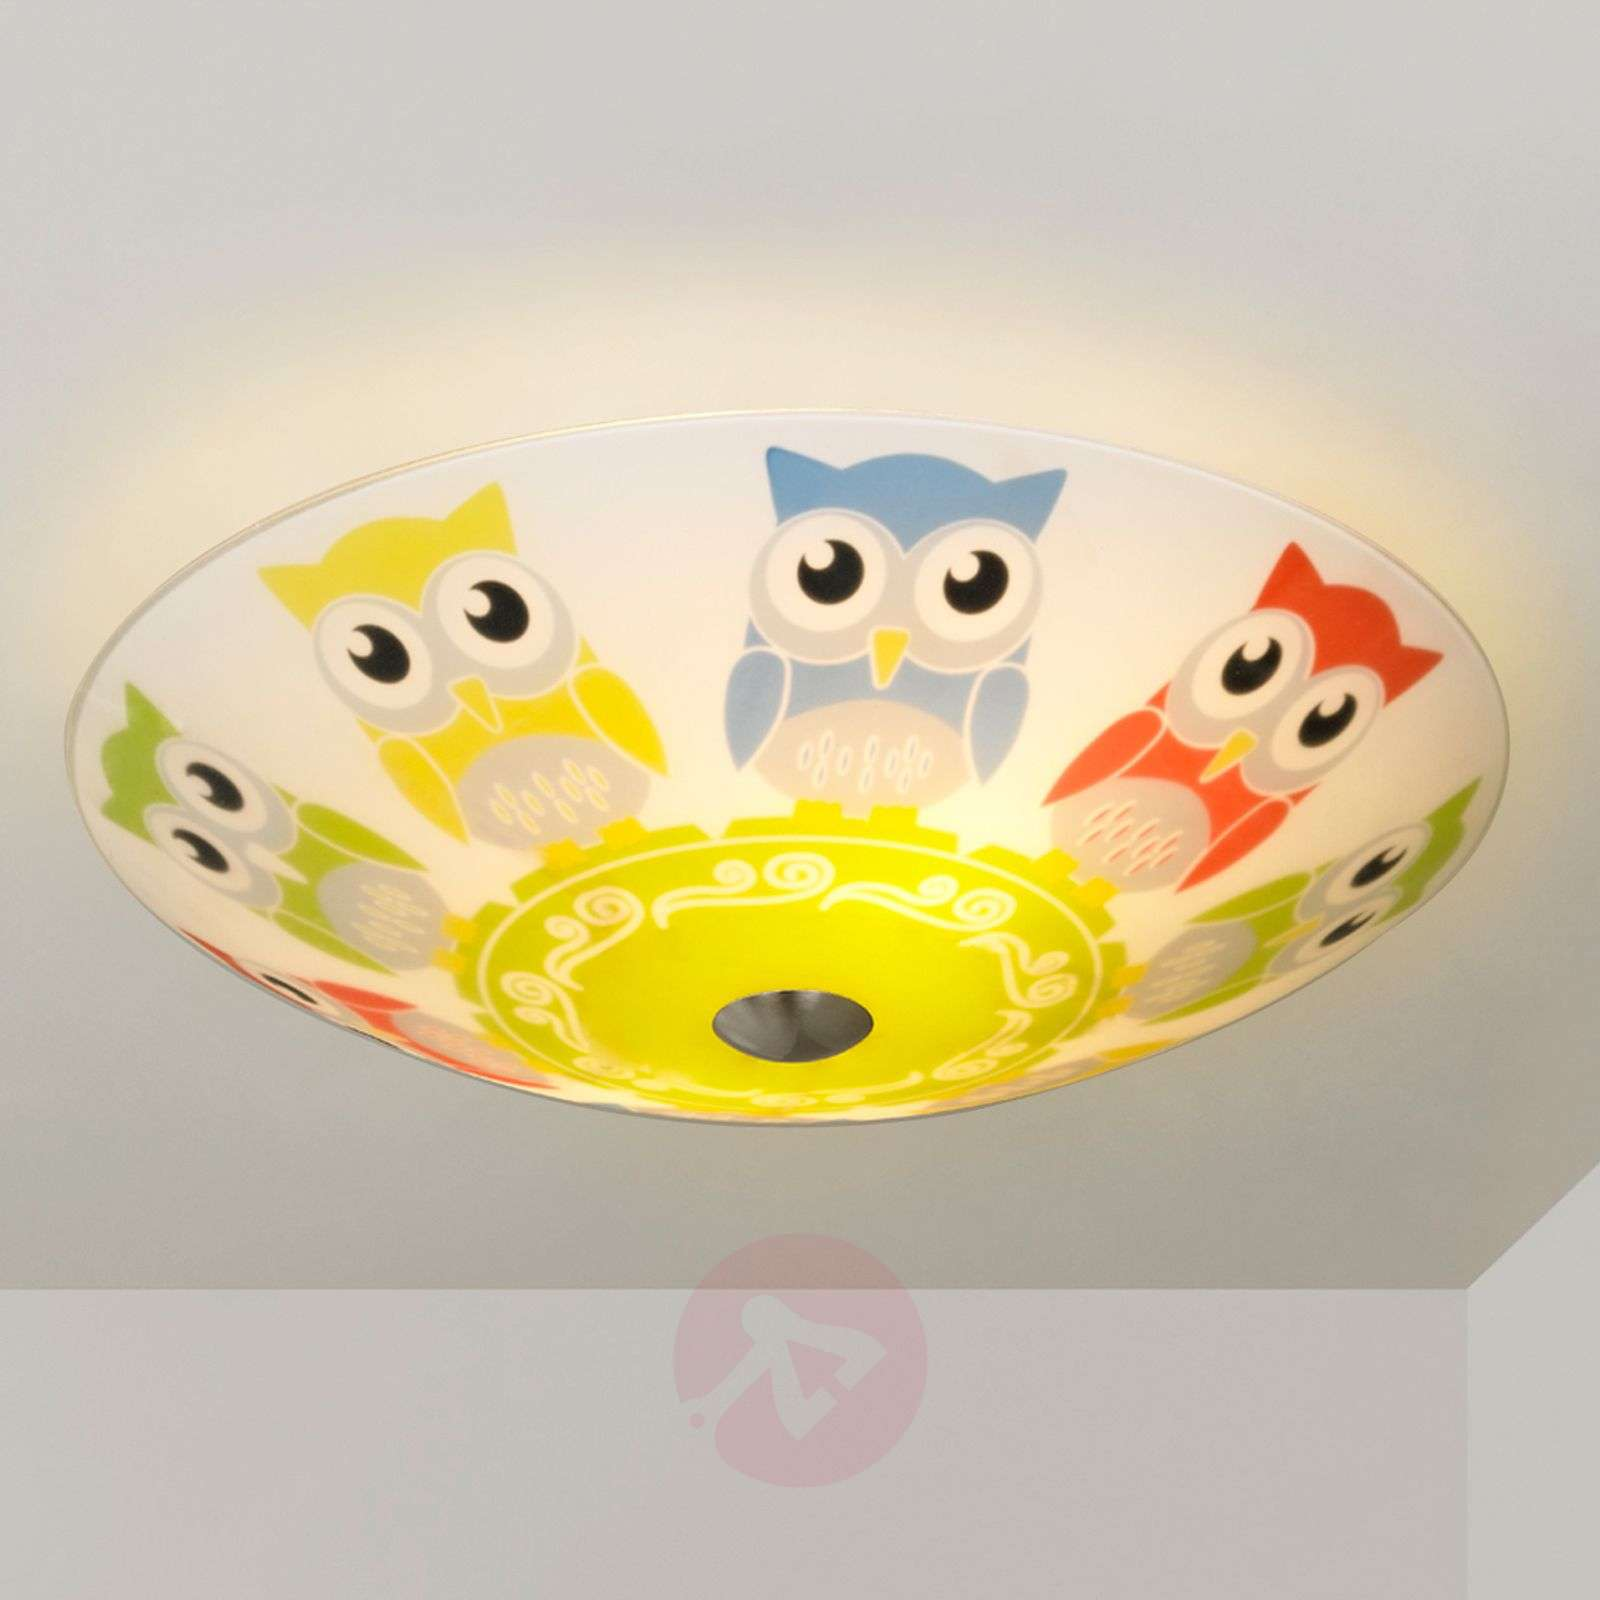 LED children's room ceiling light Eula, 40 cm-9620562-01